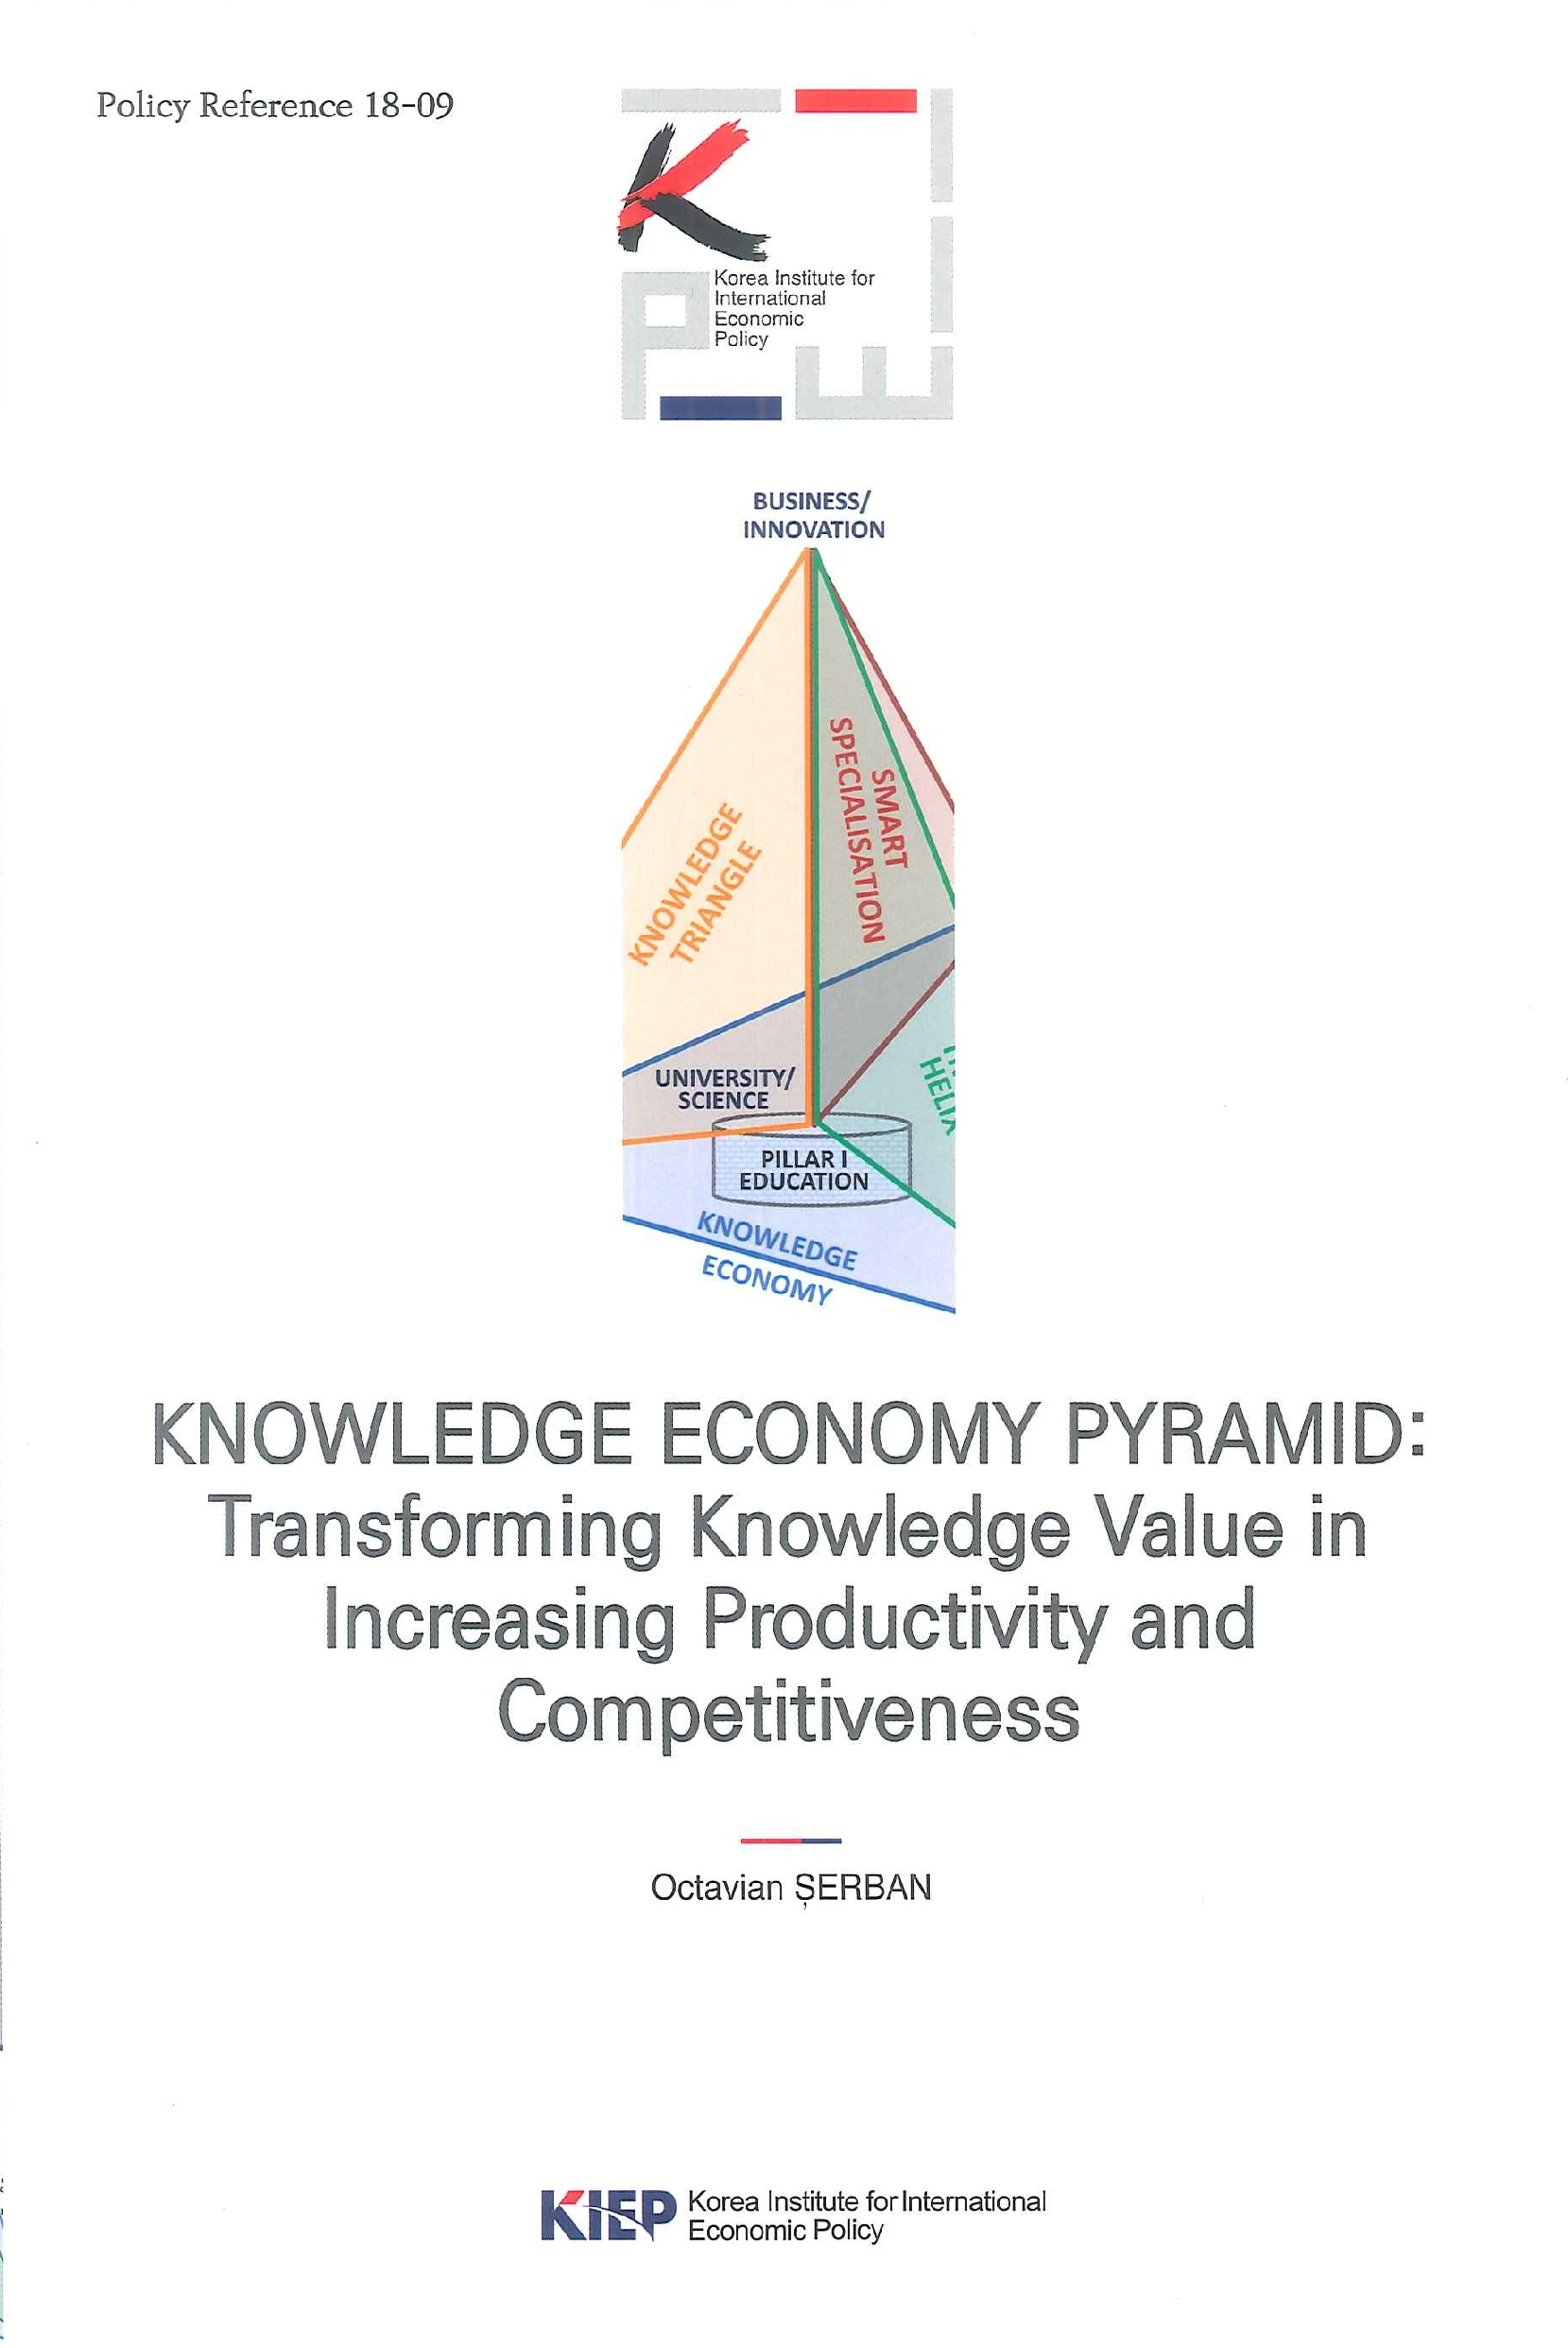 Knowledge economy pyramid:transforming knowledge value in increasing productivity and competitiveness